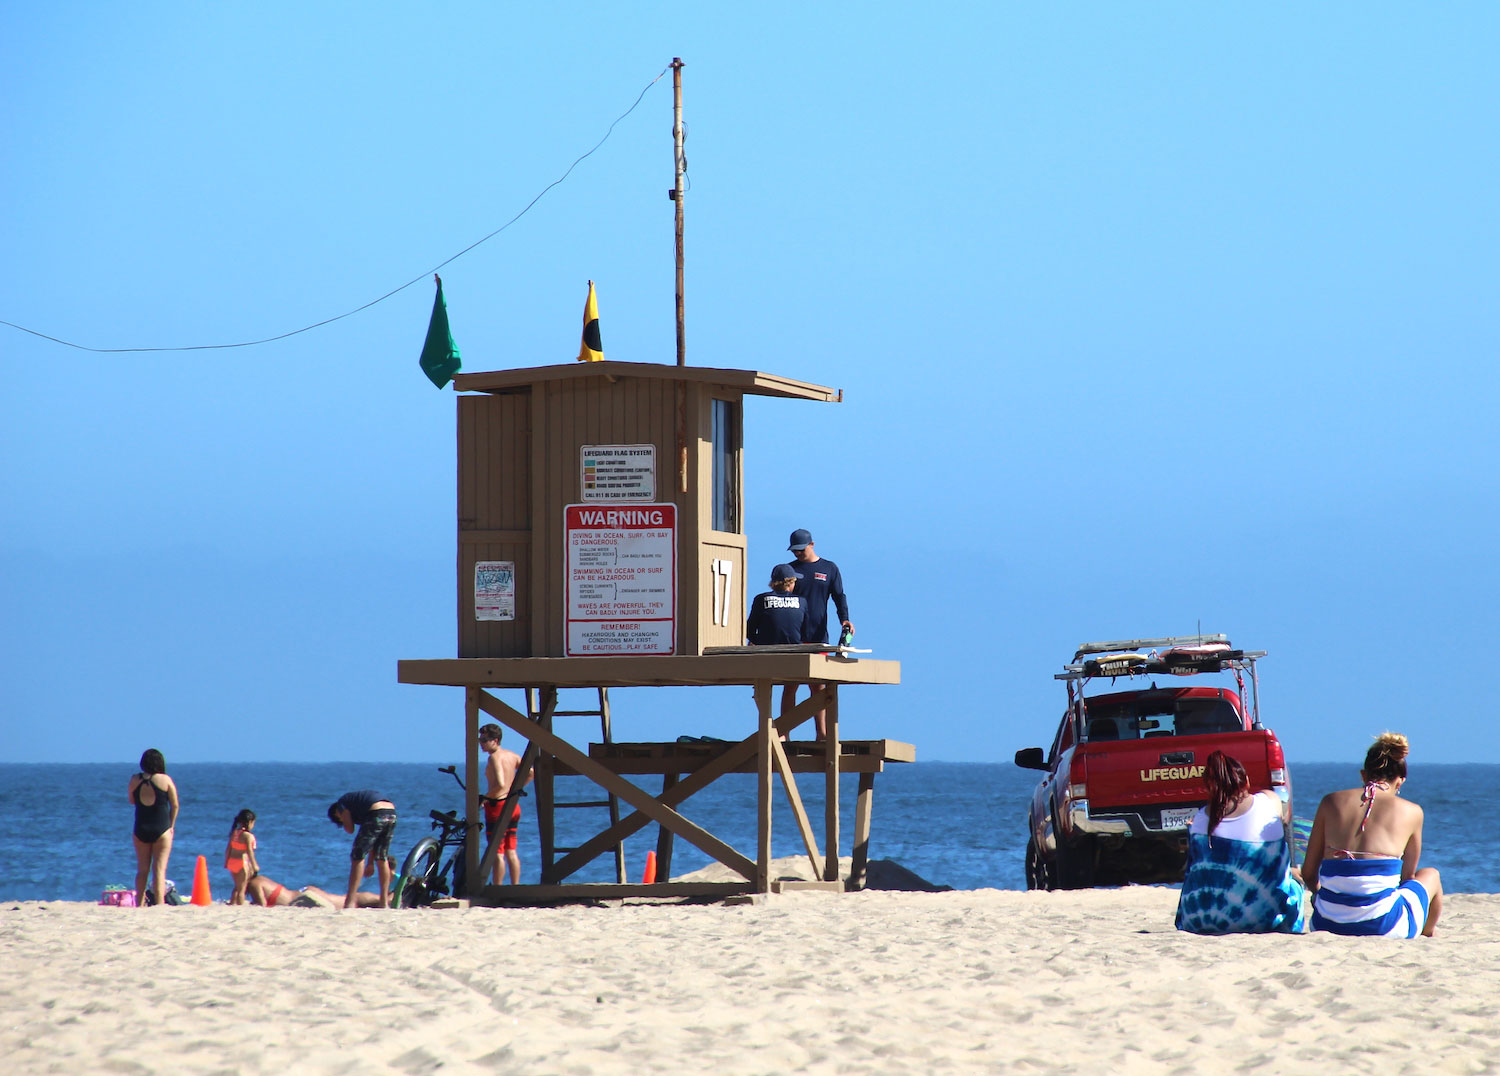 Police Files Lifeguard tower 17